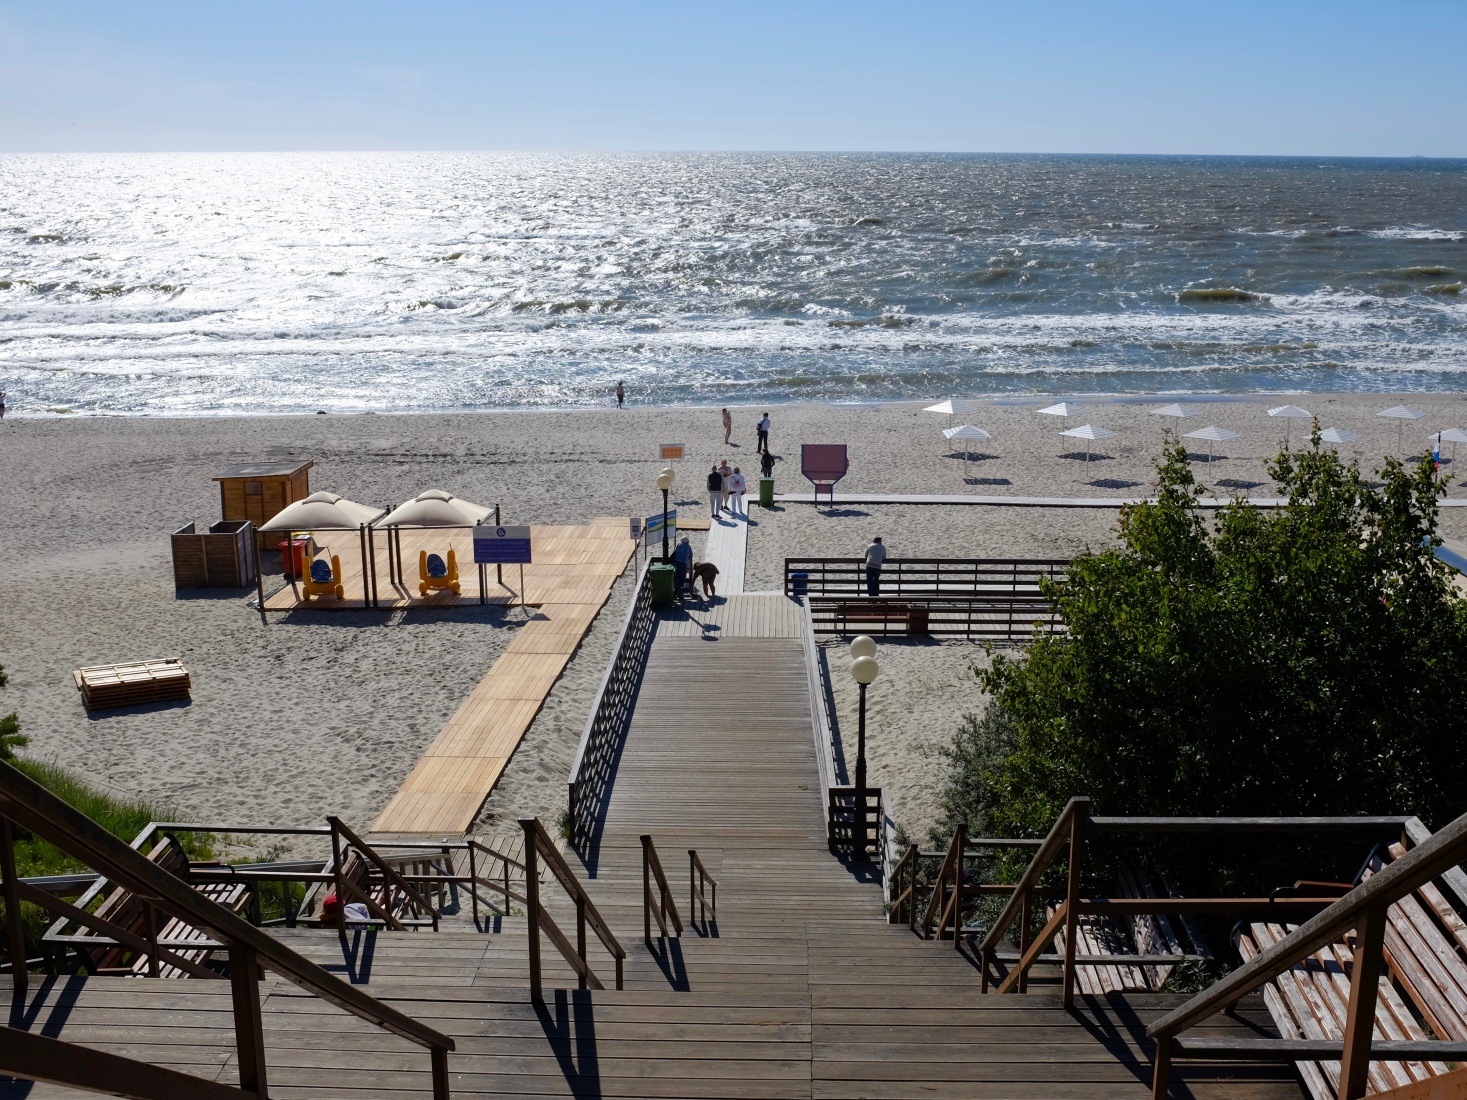 Wooden steps leading down from central Becker Part to Yantarny public beach, outside Kaliningrad, Russia.